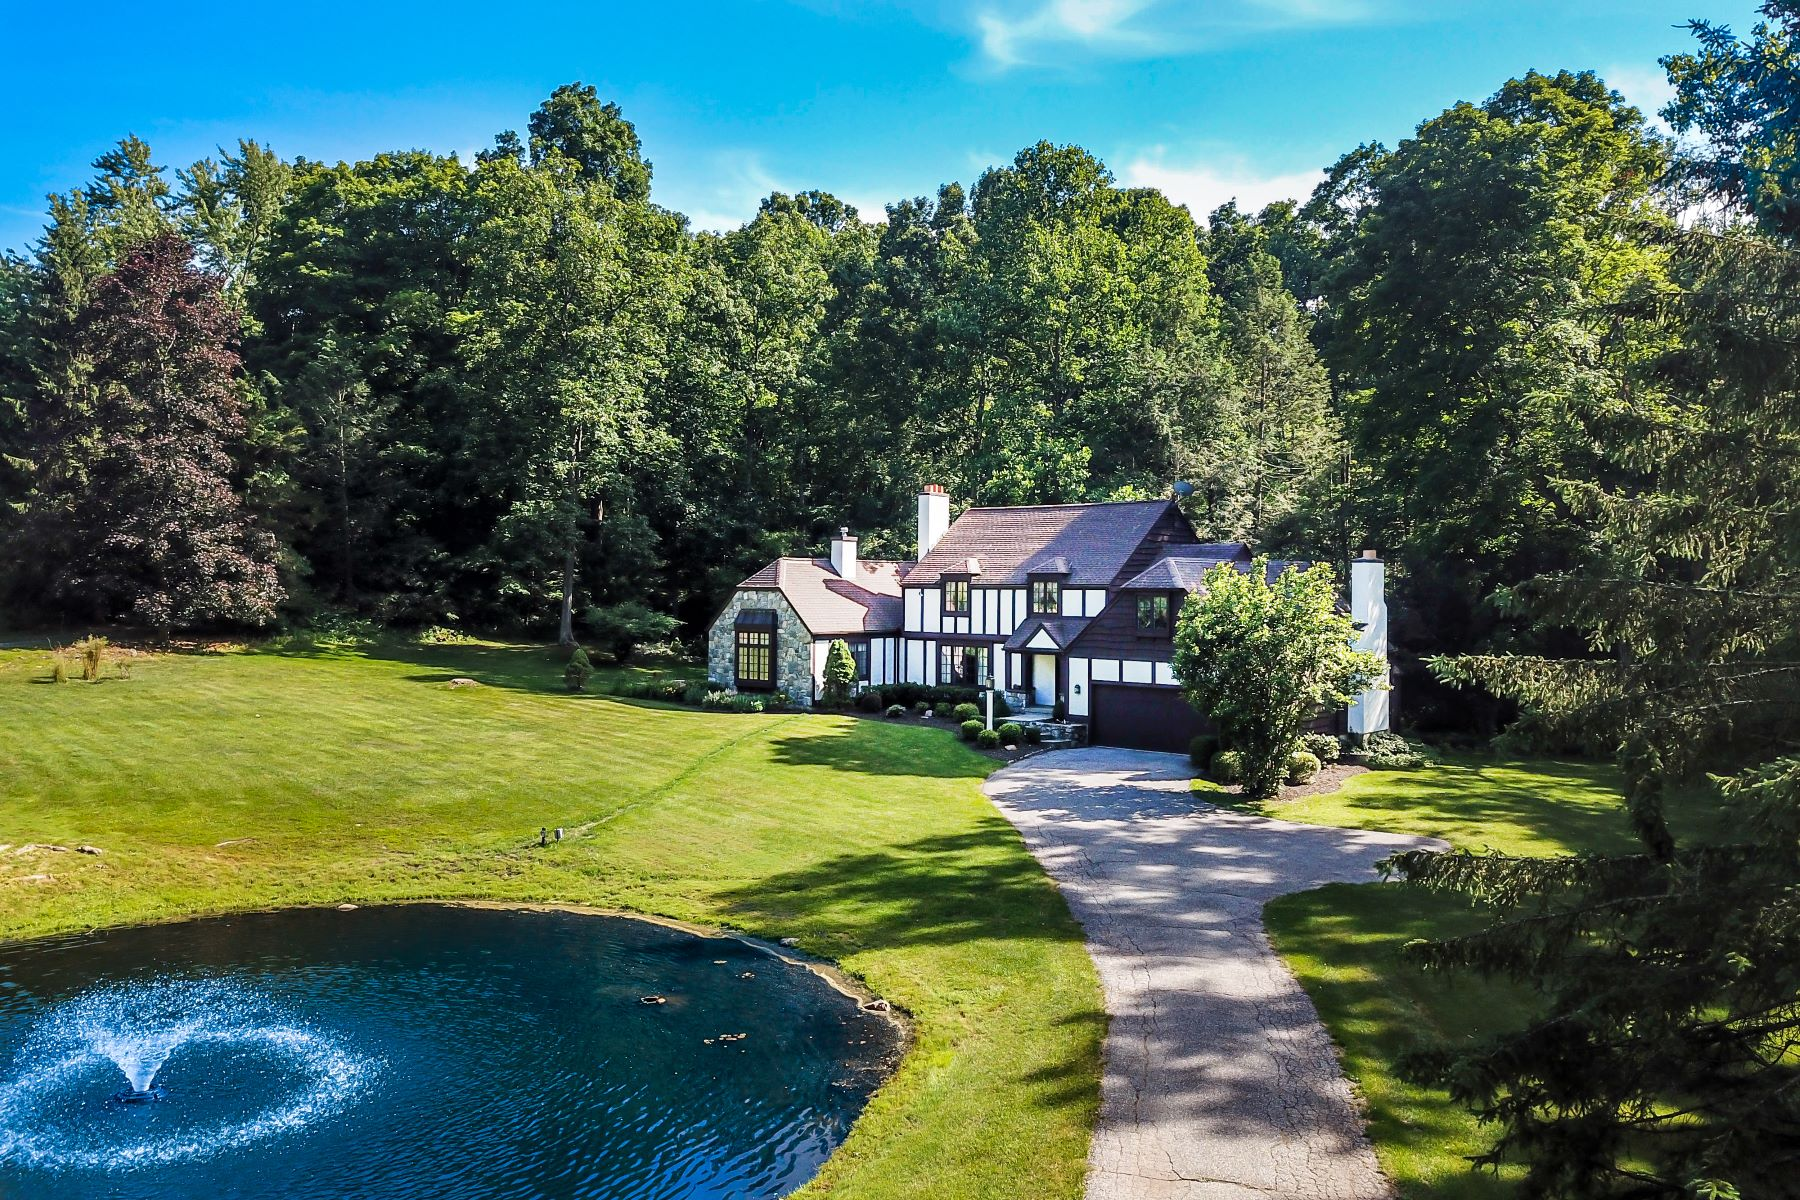 Single Family Homes for Sale at Attention To Quality And Craftsmanship 33 Obtuse Road North, Brookfield, Connecticut 06804 United States